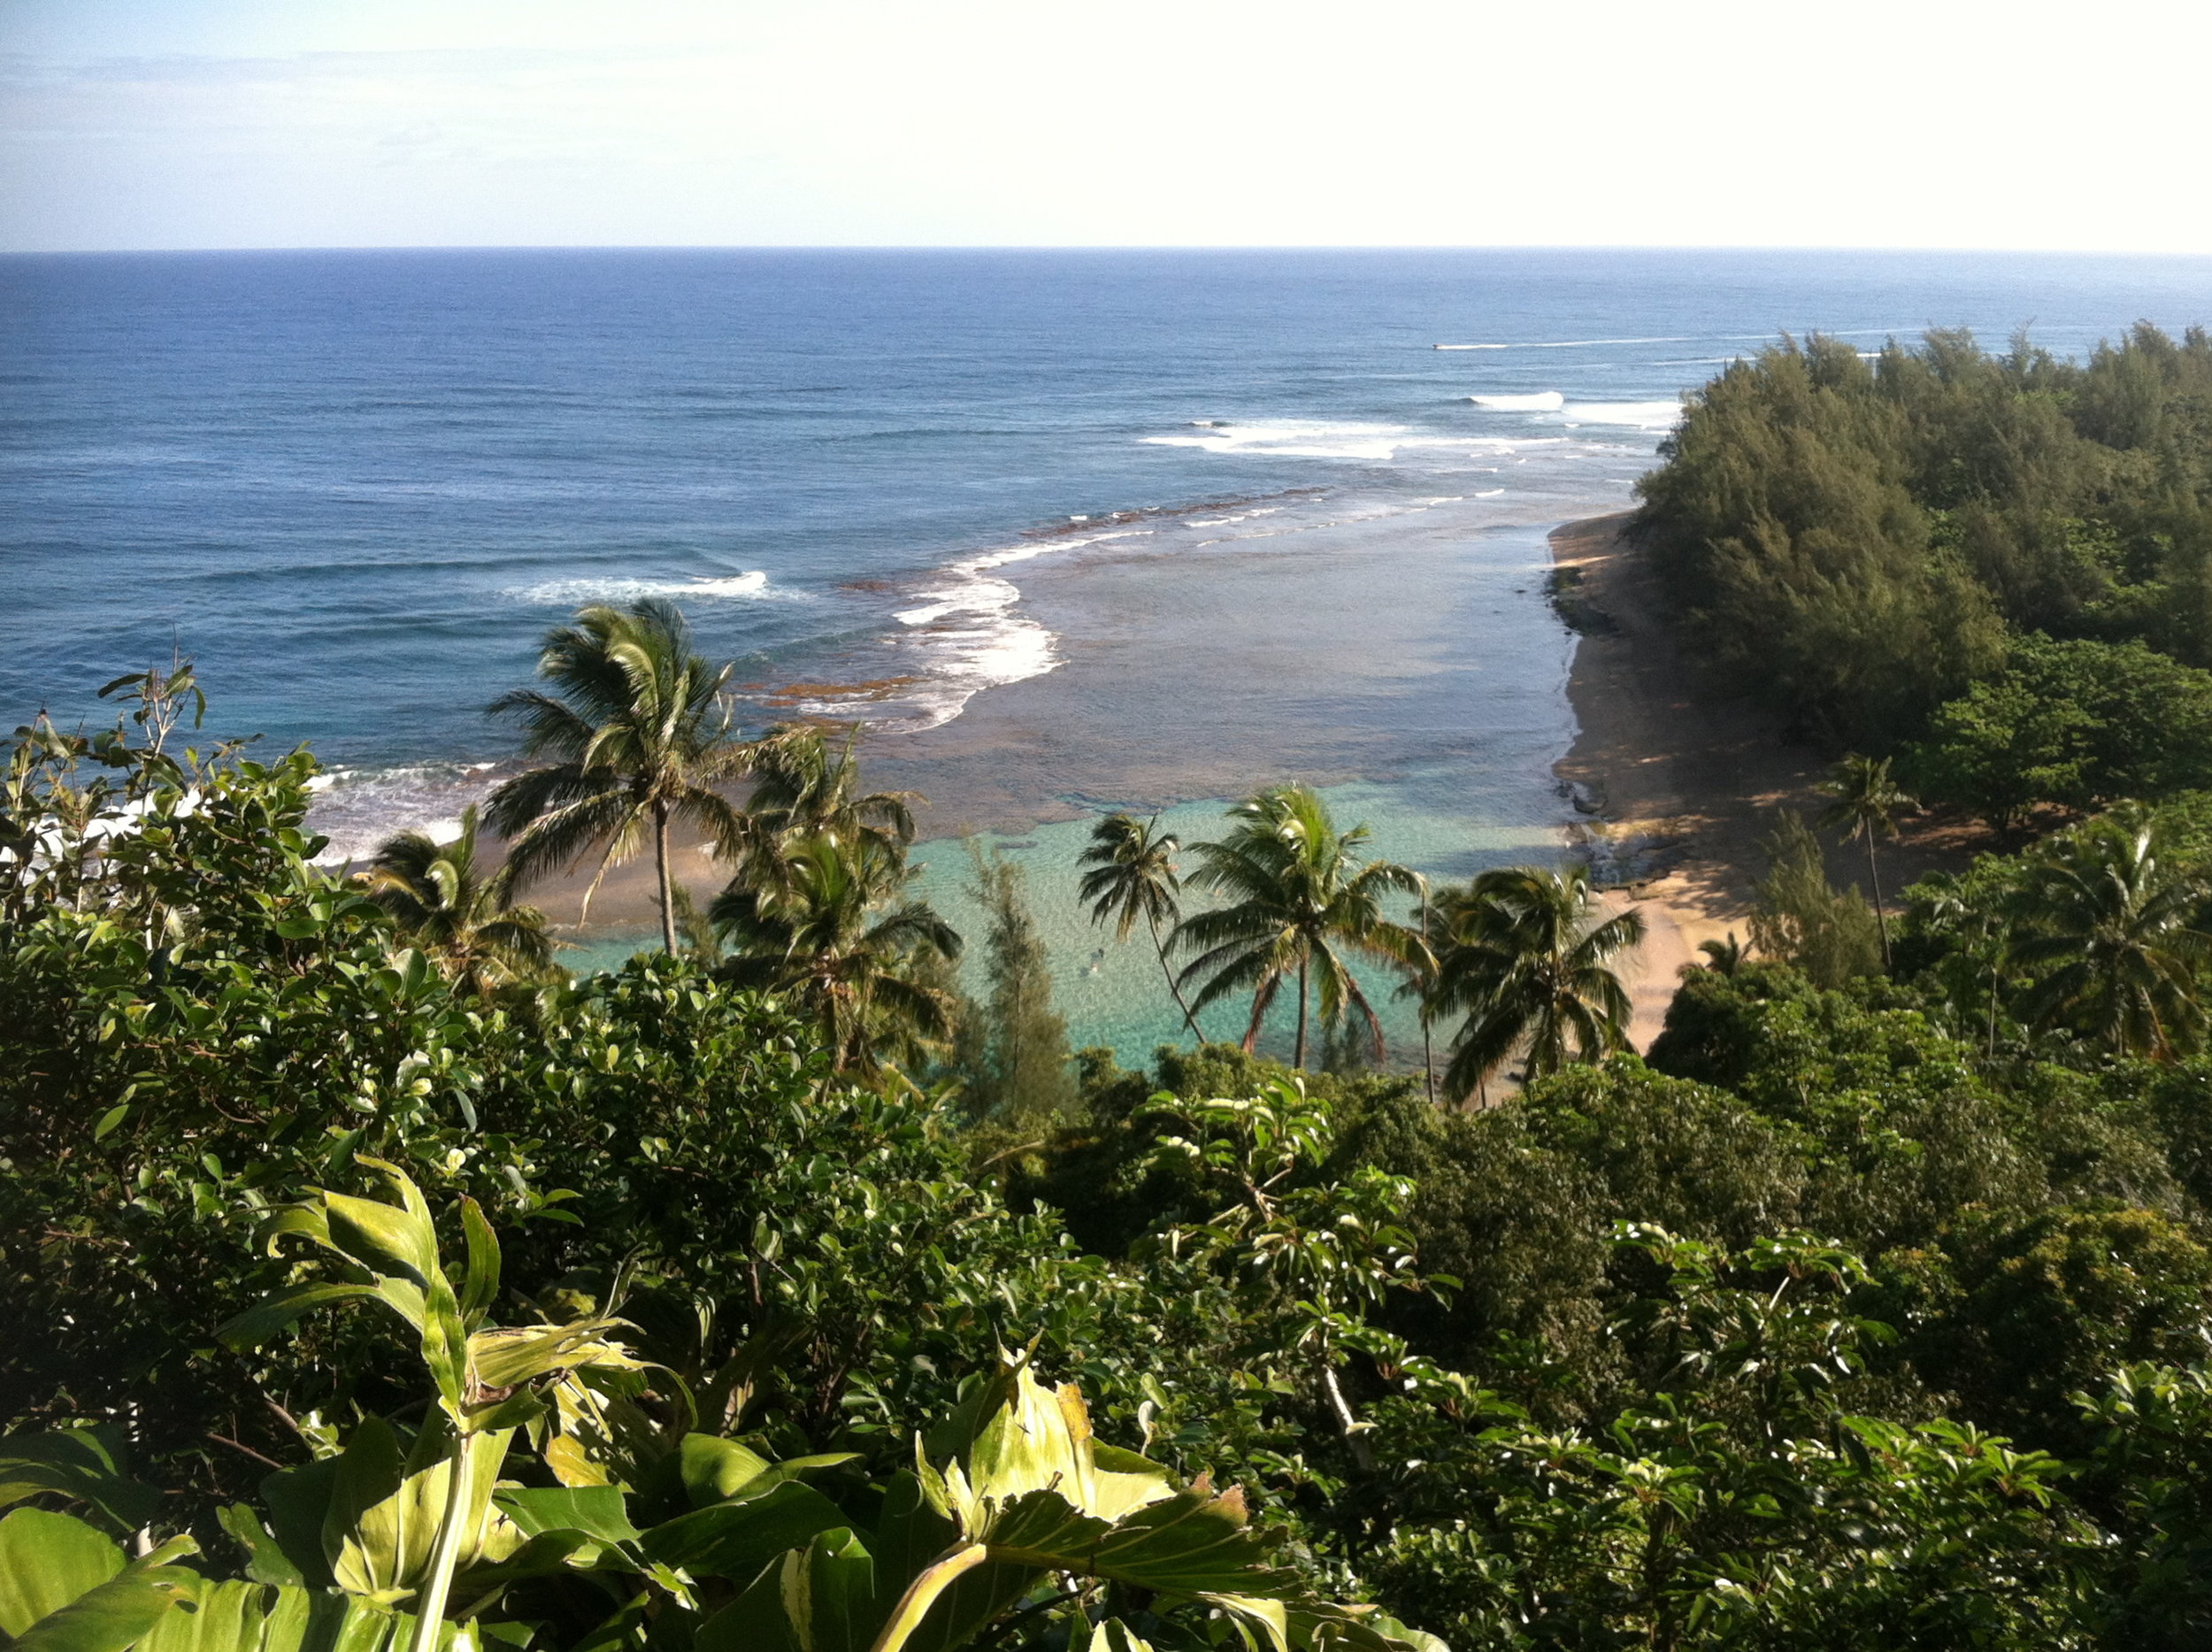 Take me to Hawaii!